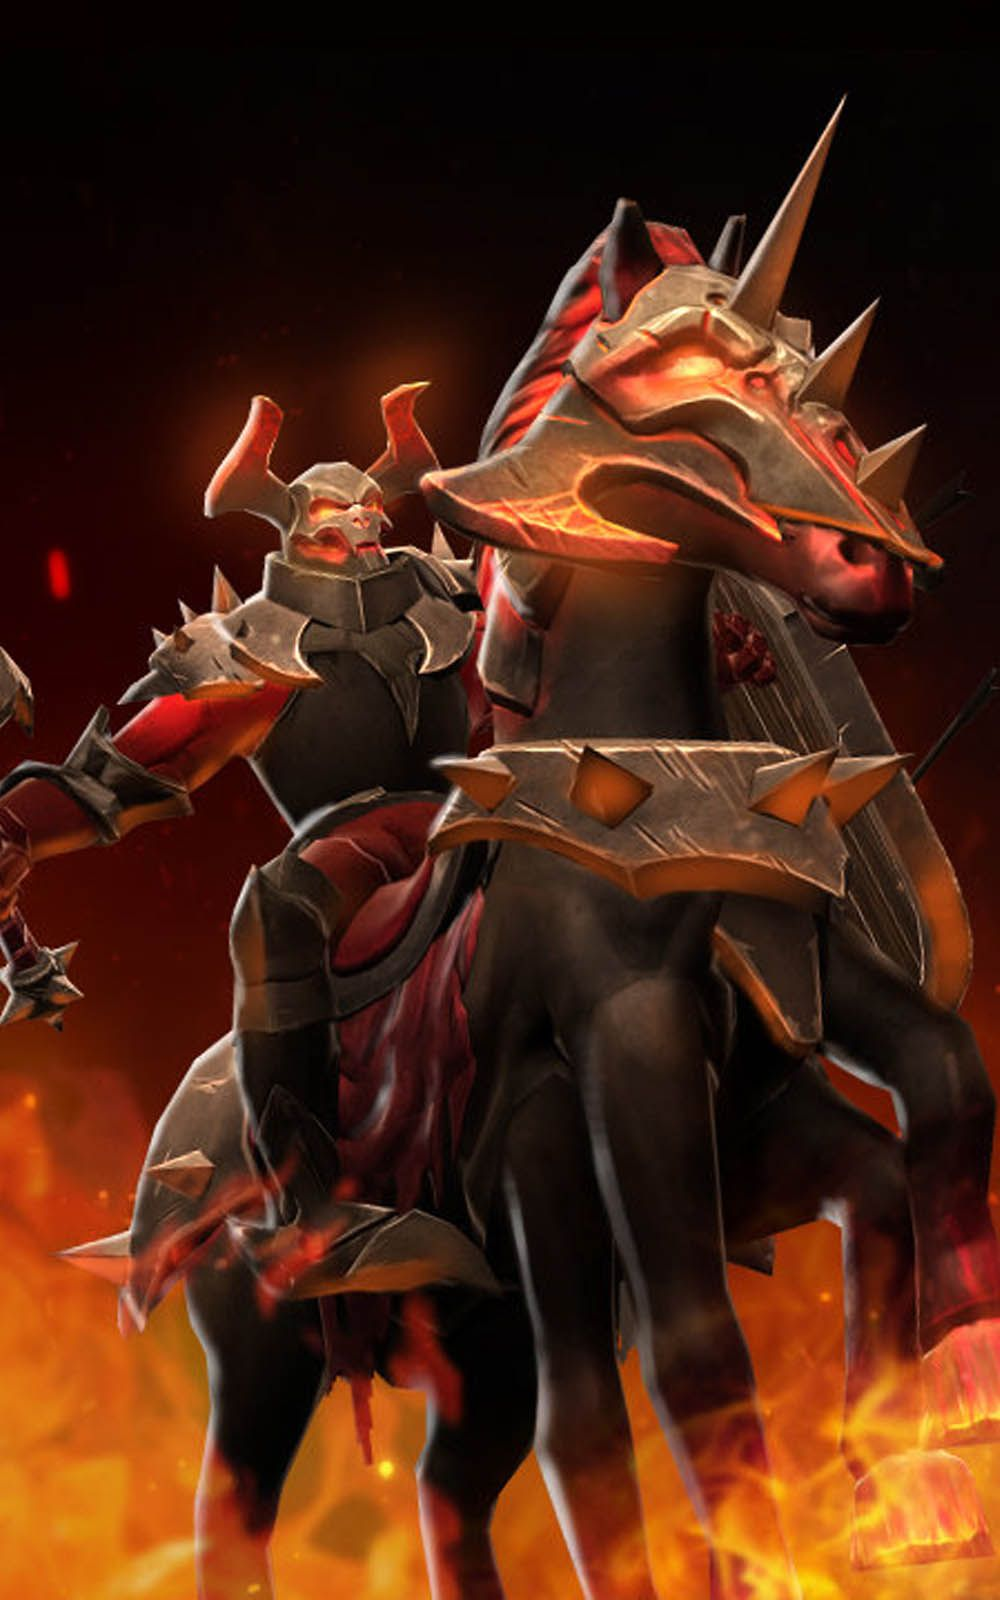 Chaos Knight Dota 2 4k Ultra Hd Mobile Wallpaper Dota 2 Wallpapers Hd Defense Of The Ancients Dota 2 Wallpaper